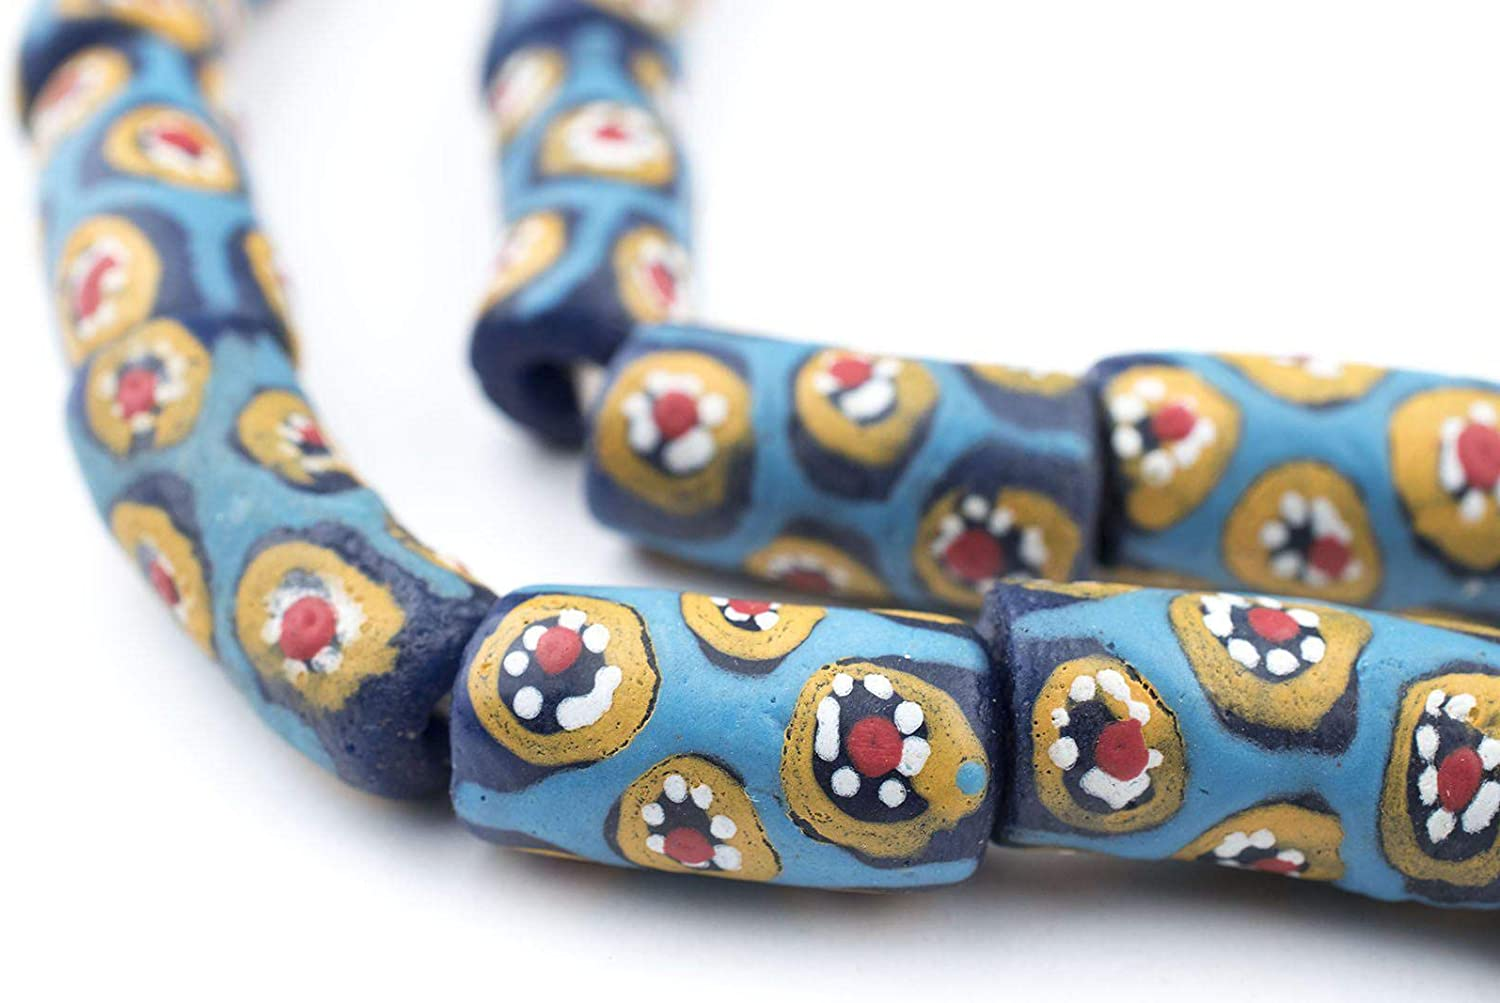 28 BET4125 beautiful spacers great condition Kakamba Bohemian African Trade beads 6 mm wide translucent  aqua and blue 4 mm thick